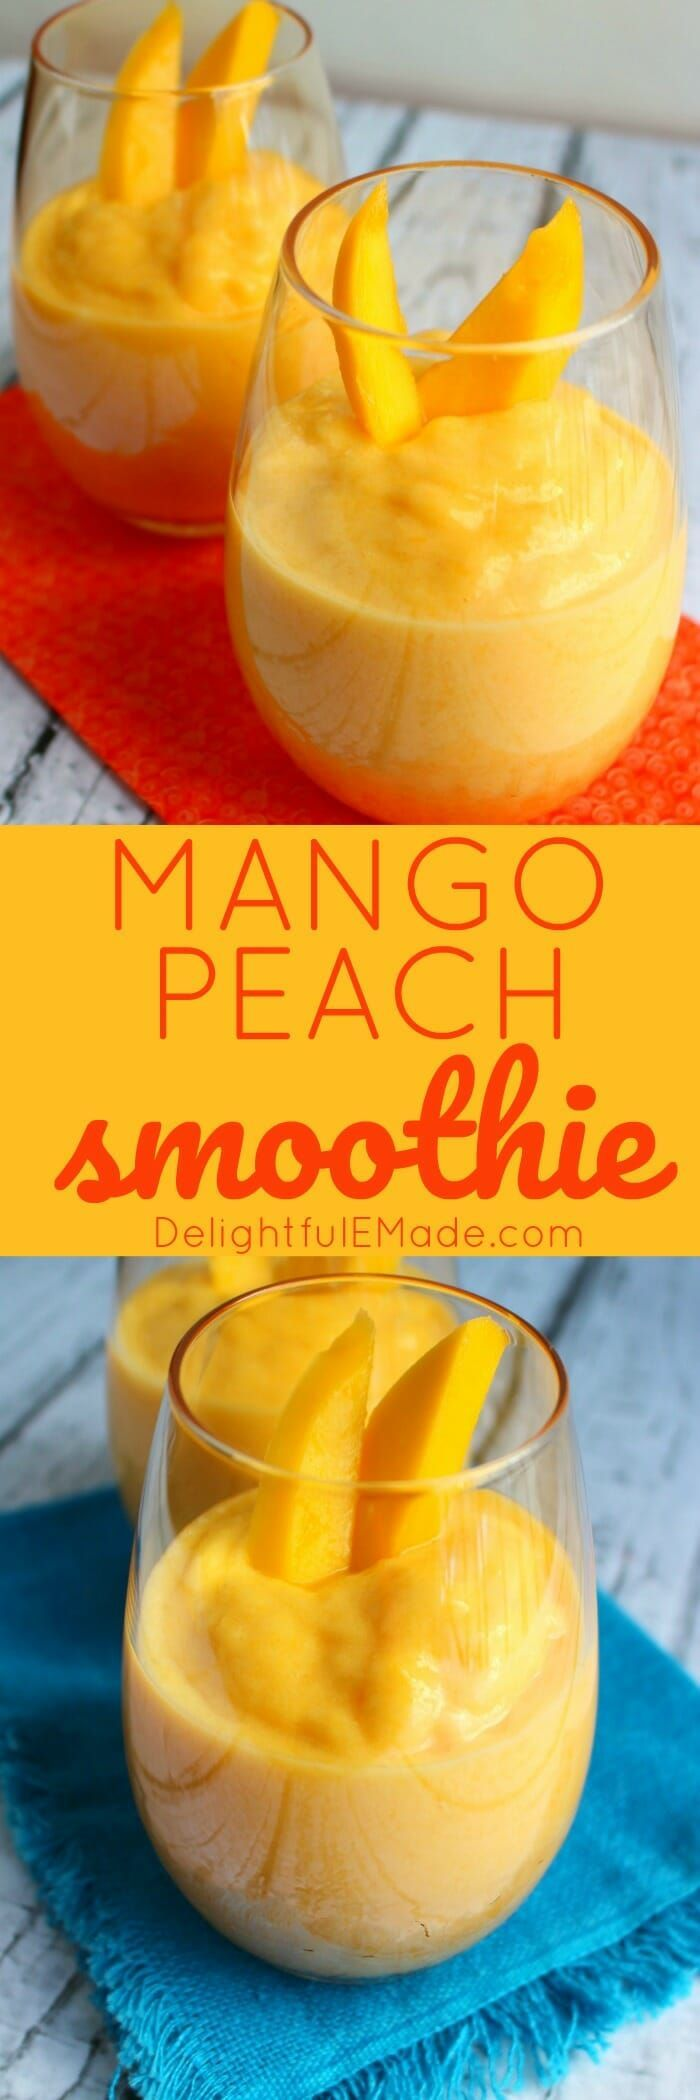 If you love peaches and mangoes then this Mango Peach Smoothie recipe will be right up your alley! A fantastic healthy snack option or a quick on-the-go breakfast idea, it's perfect for when you're trying to make healthier choices! #Breakfast #Delightfule